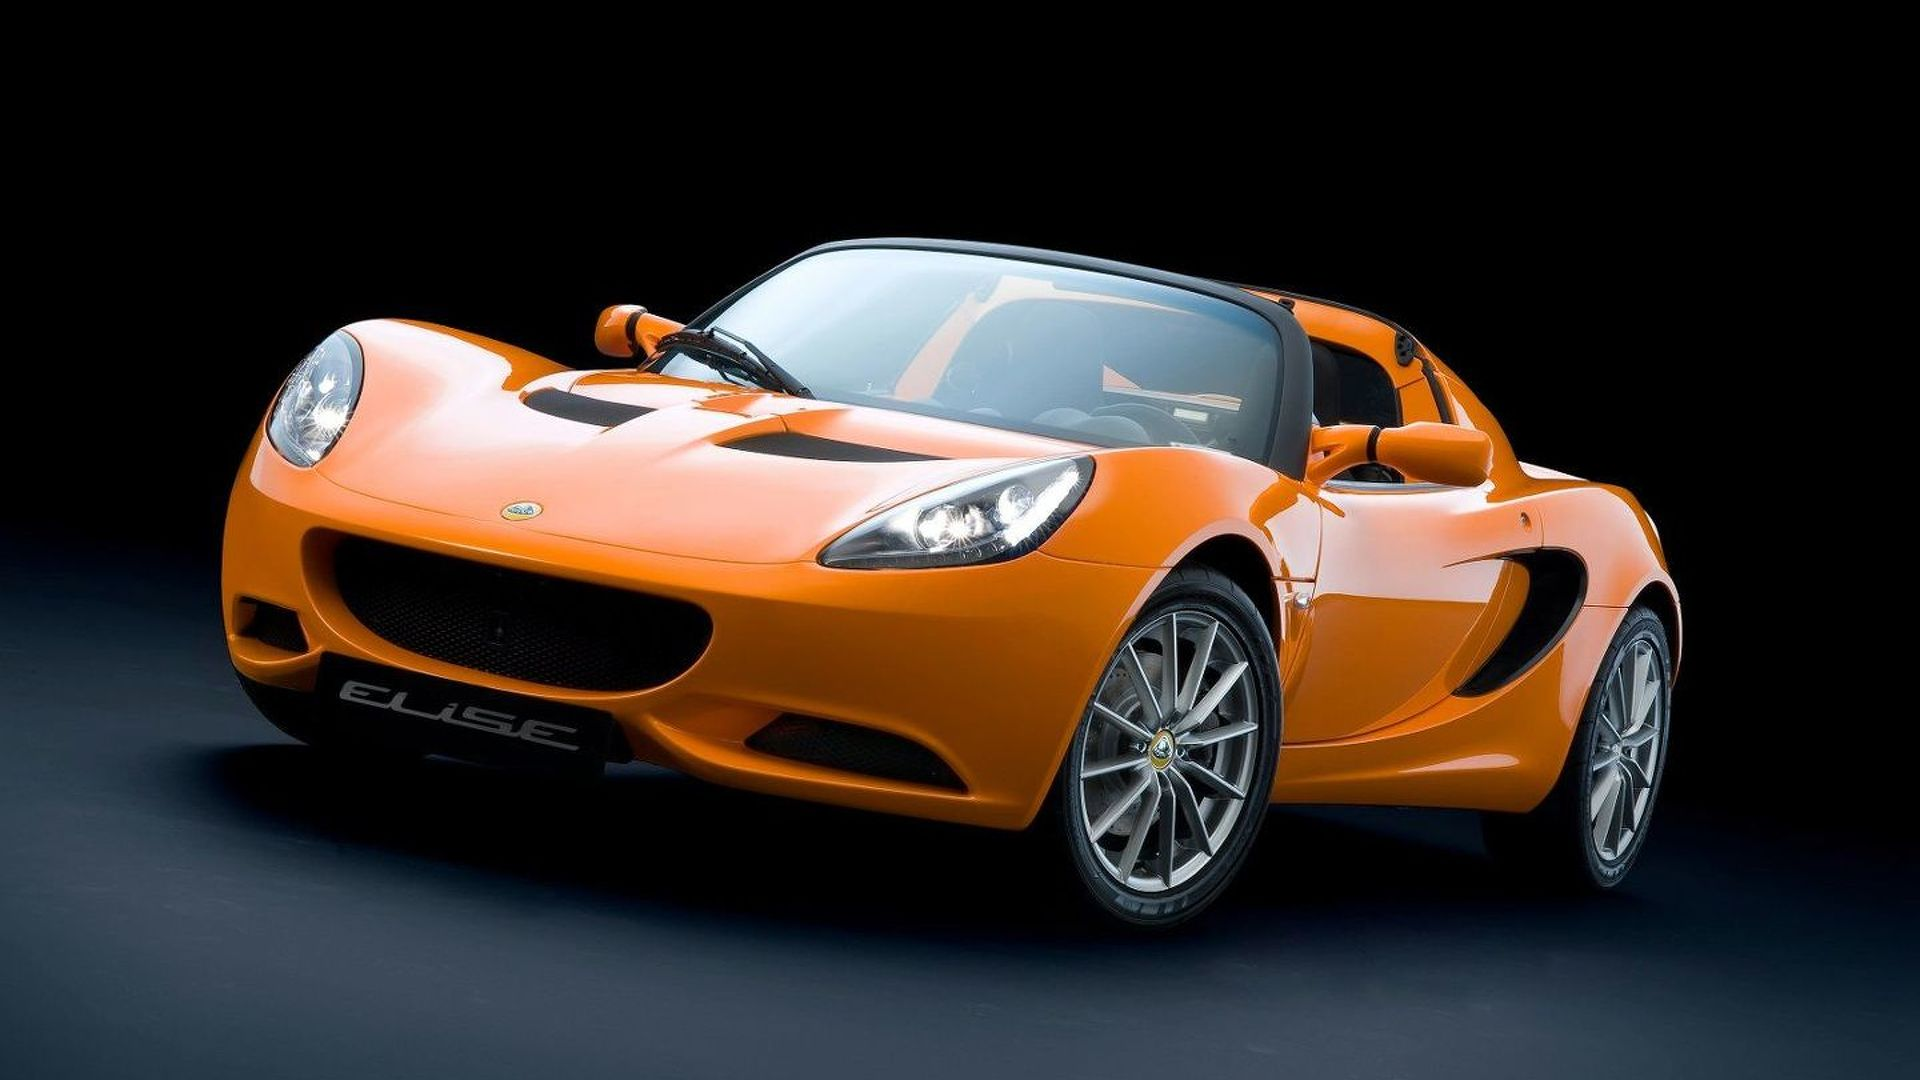 2011 Lotus Elise Posts Lowest CO2 Emissions of Any Sportscar in its Segment Worldwide